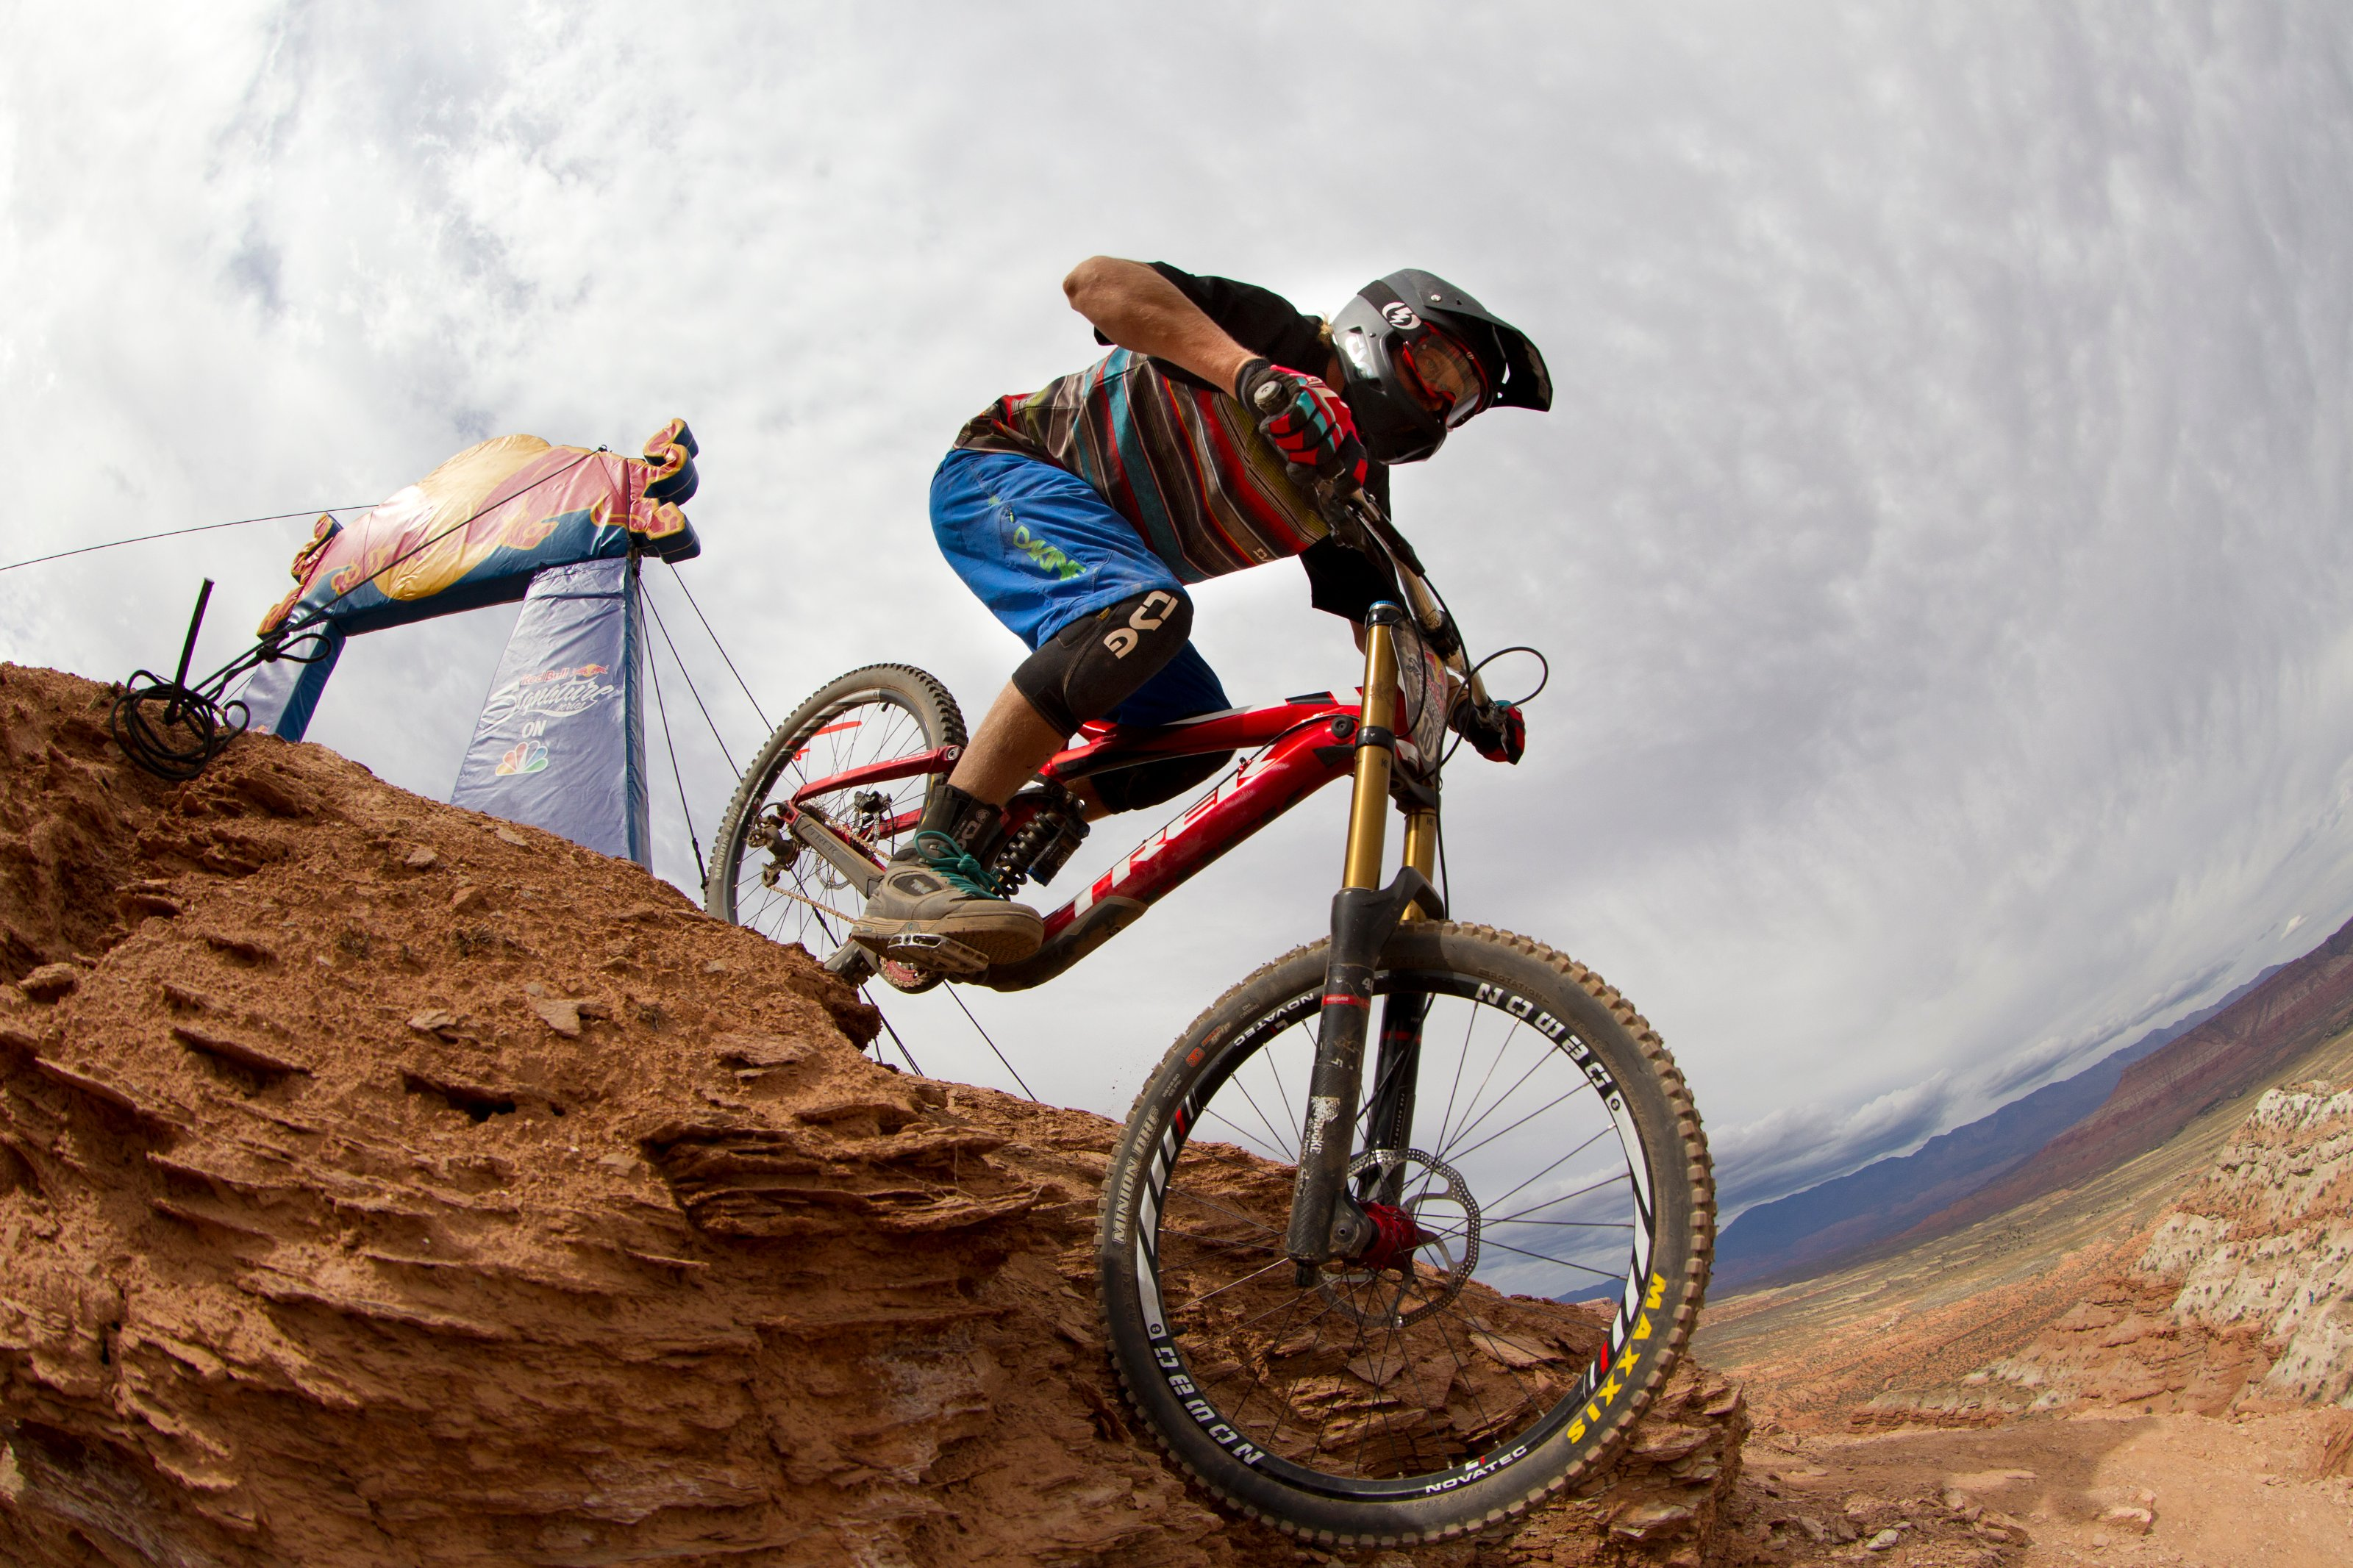 Ramon Hunziker takes a practice run at Red Bull Rampage, in Virgin, UT, USA, on 9 October, 2013. // John Gibson/Red Bull Content Pool // P-20131010-00014 // Usage for editorial use only // Please go to www.redbullcontentpool.com for further information. //